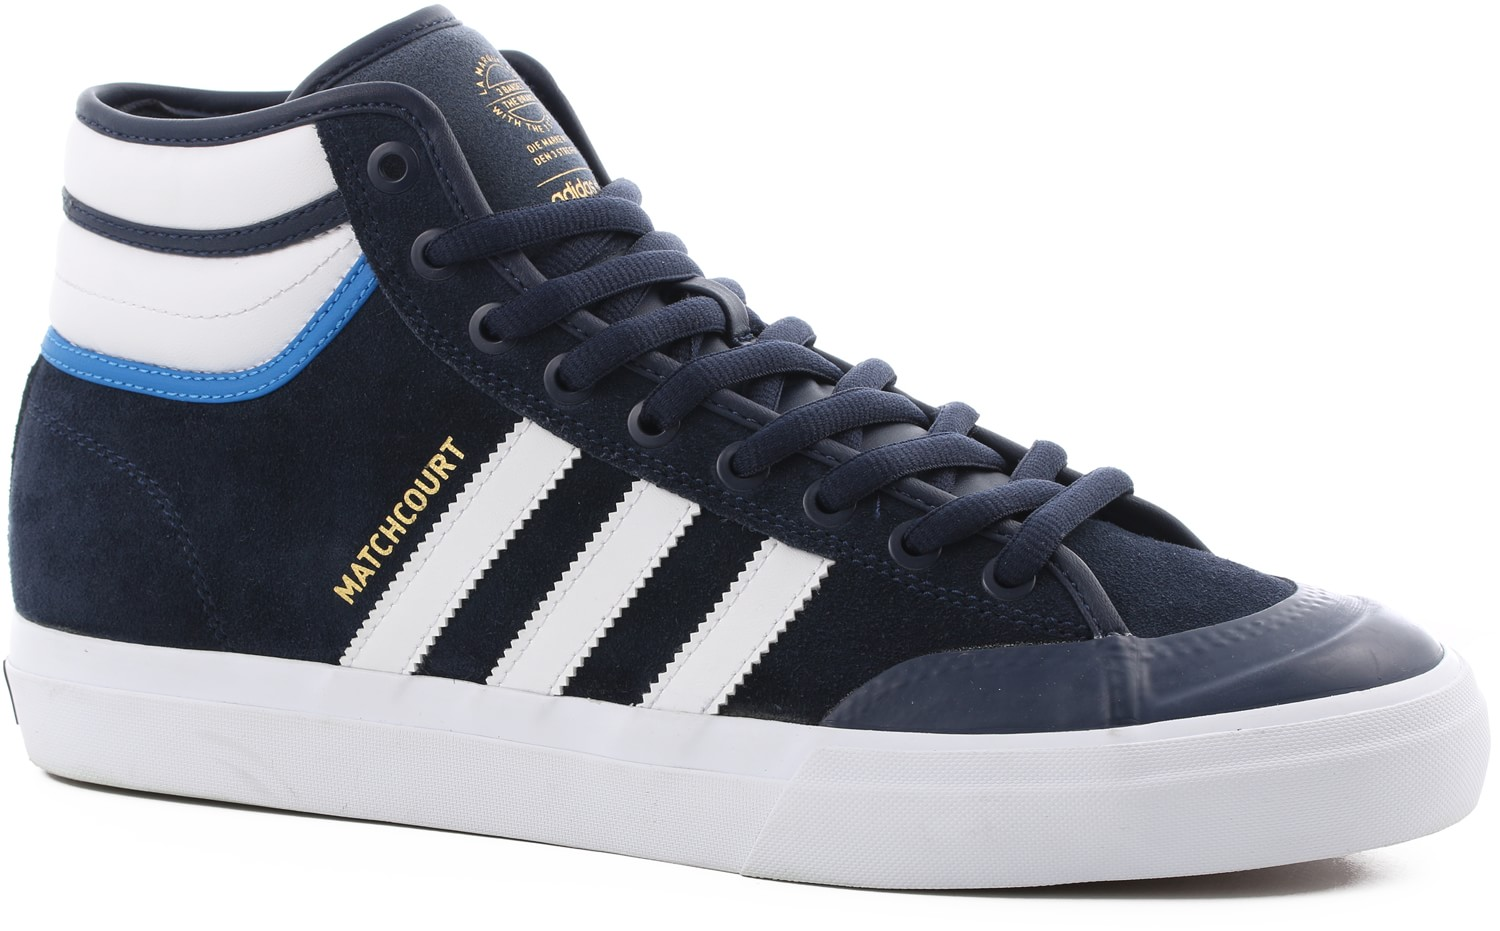 Matchcourt High RX Shoes Adidas Matchcourt High RX2 Mens Shoes Navy White  Blue ... 28466e51e